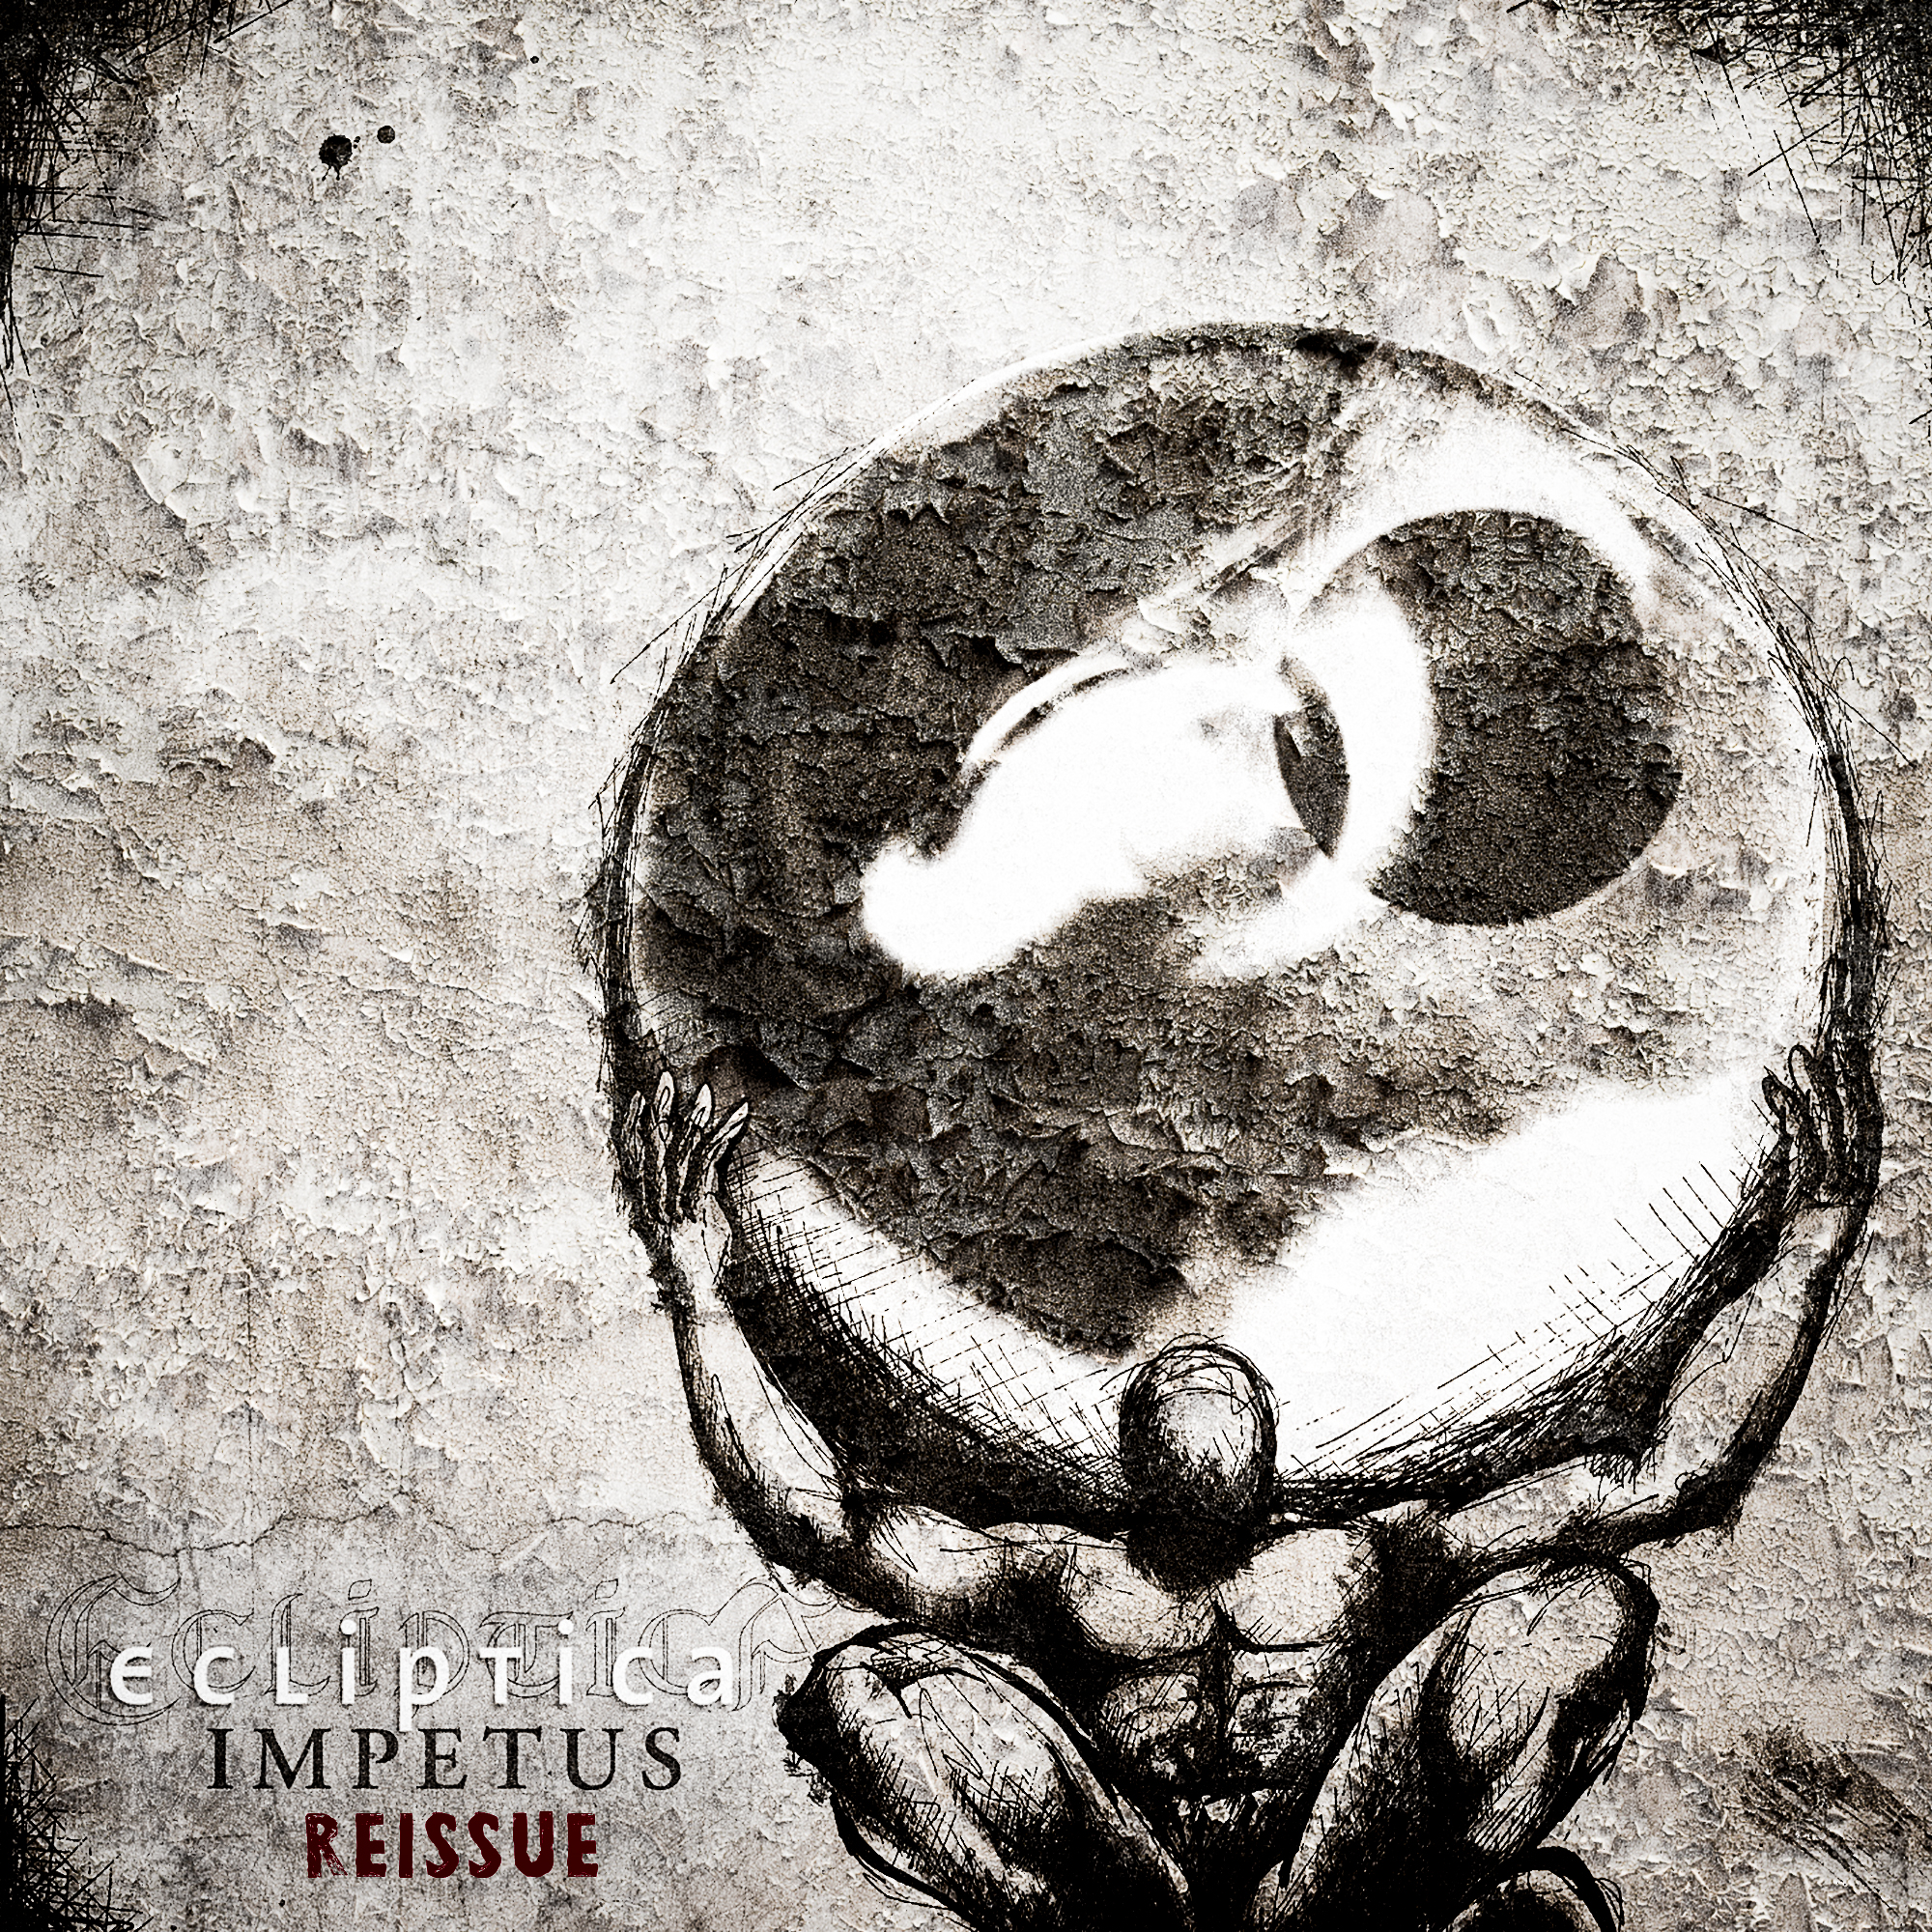 ECLIPTICA - Impetus Reissue // Album, 2013/12/09 // MMP002 // EAN: 9008798138173